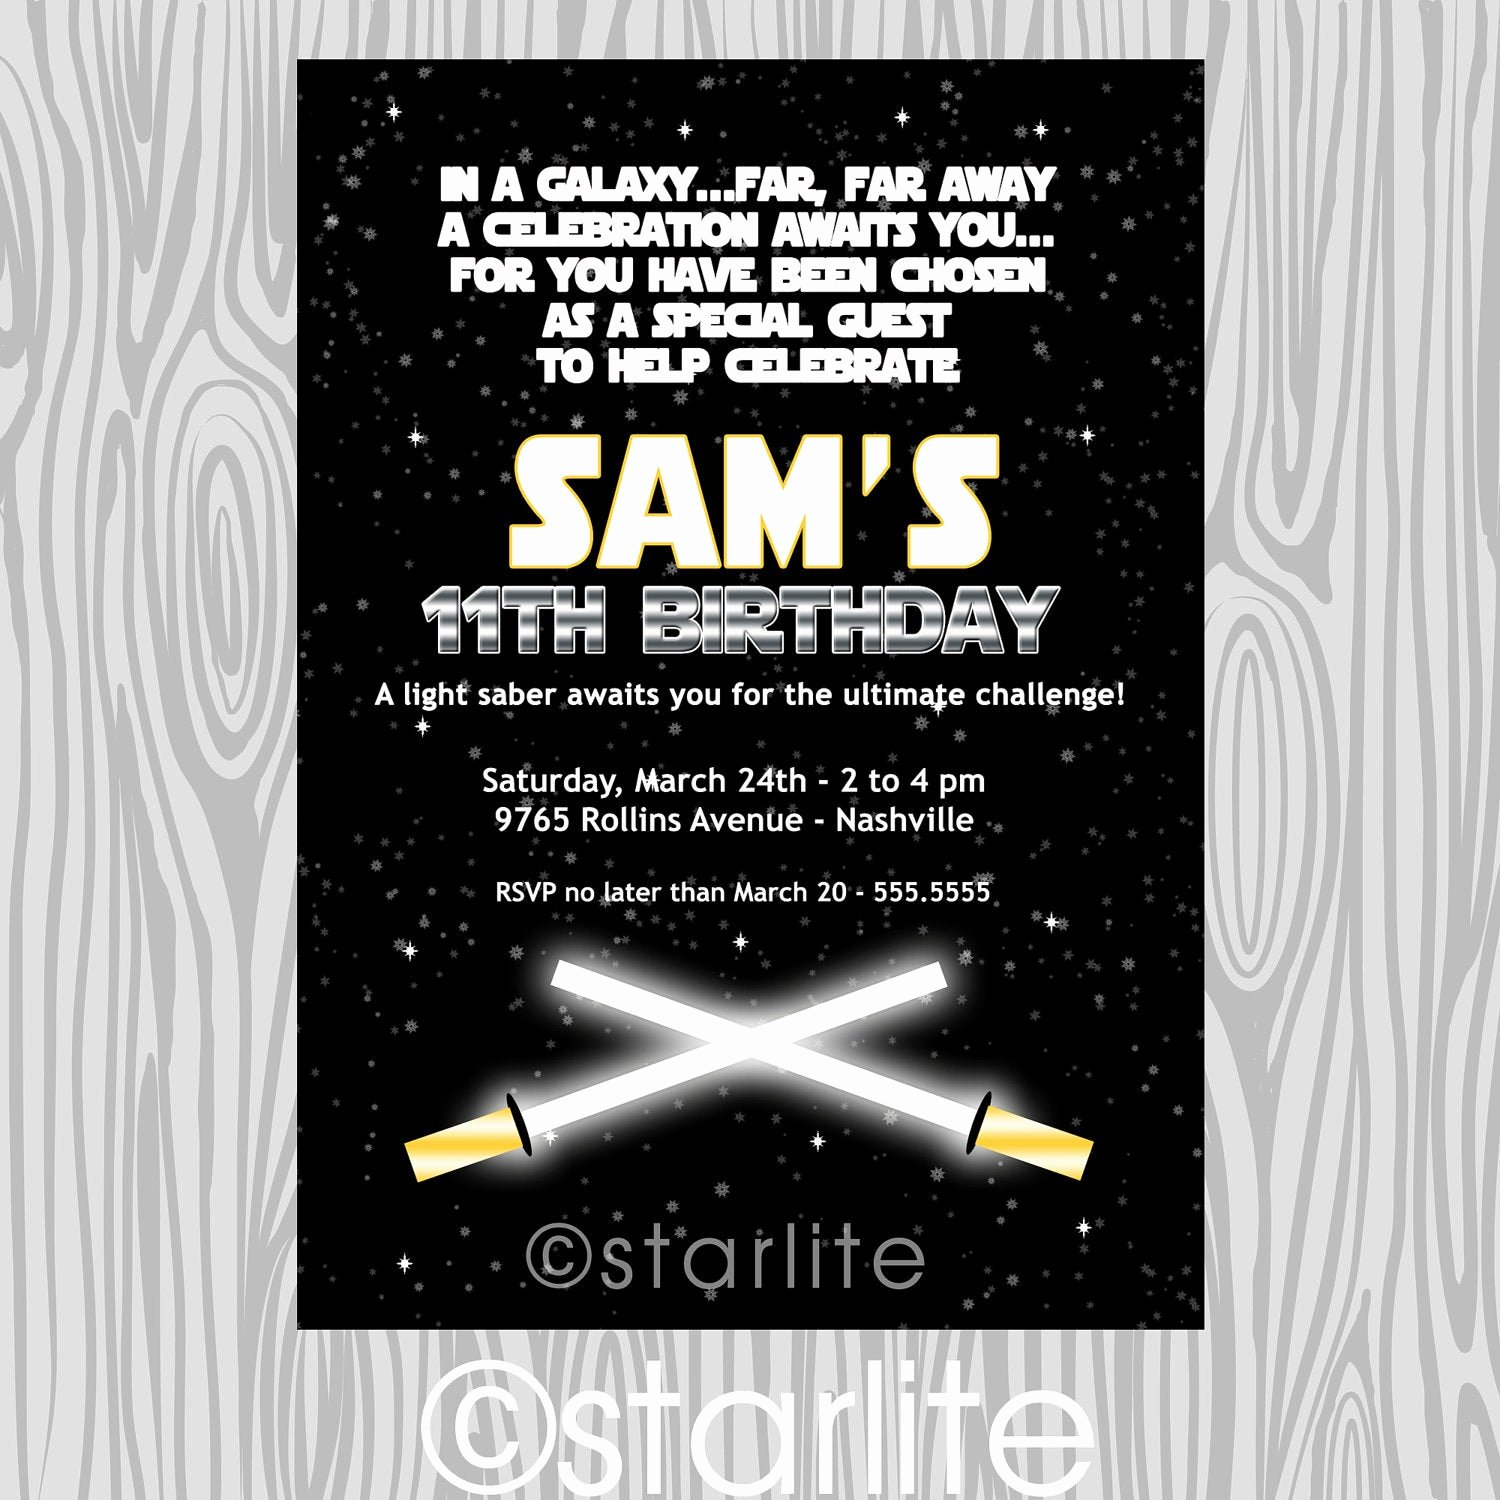 Star Wars Birthday Invitation Beautiful Star Wars Inspired Star Wars theme Birthday Party by Starwedd